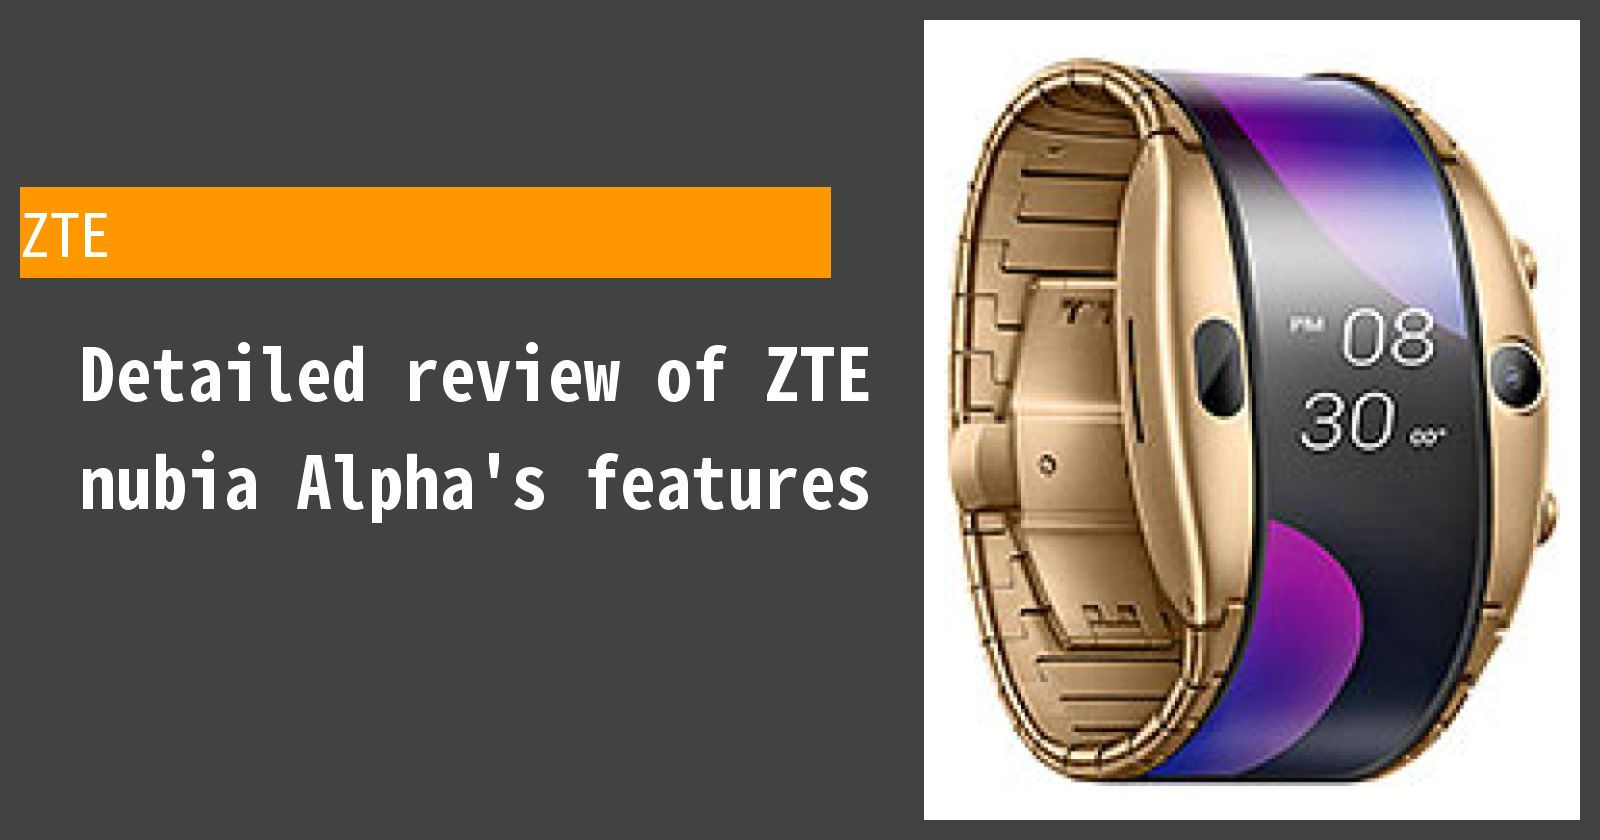 Detailed review of ZTE nubia Alpha's features